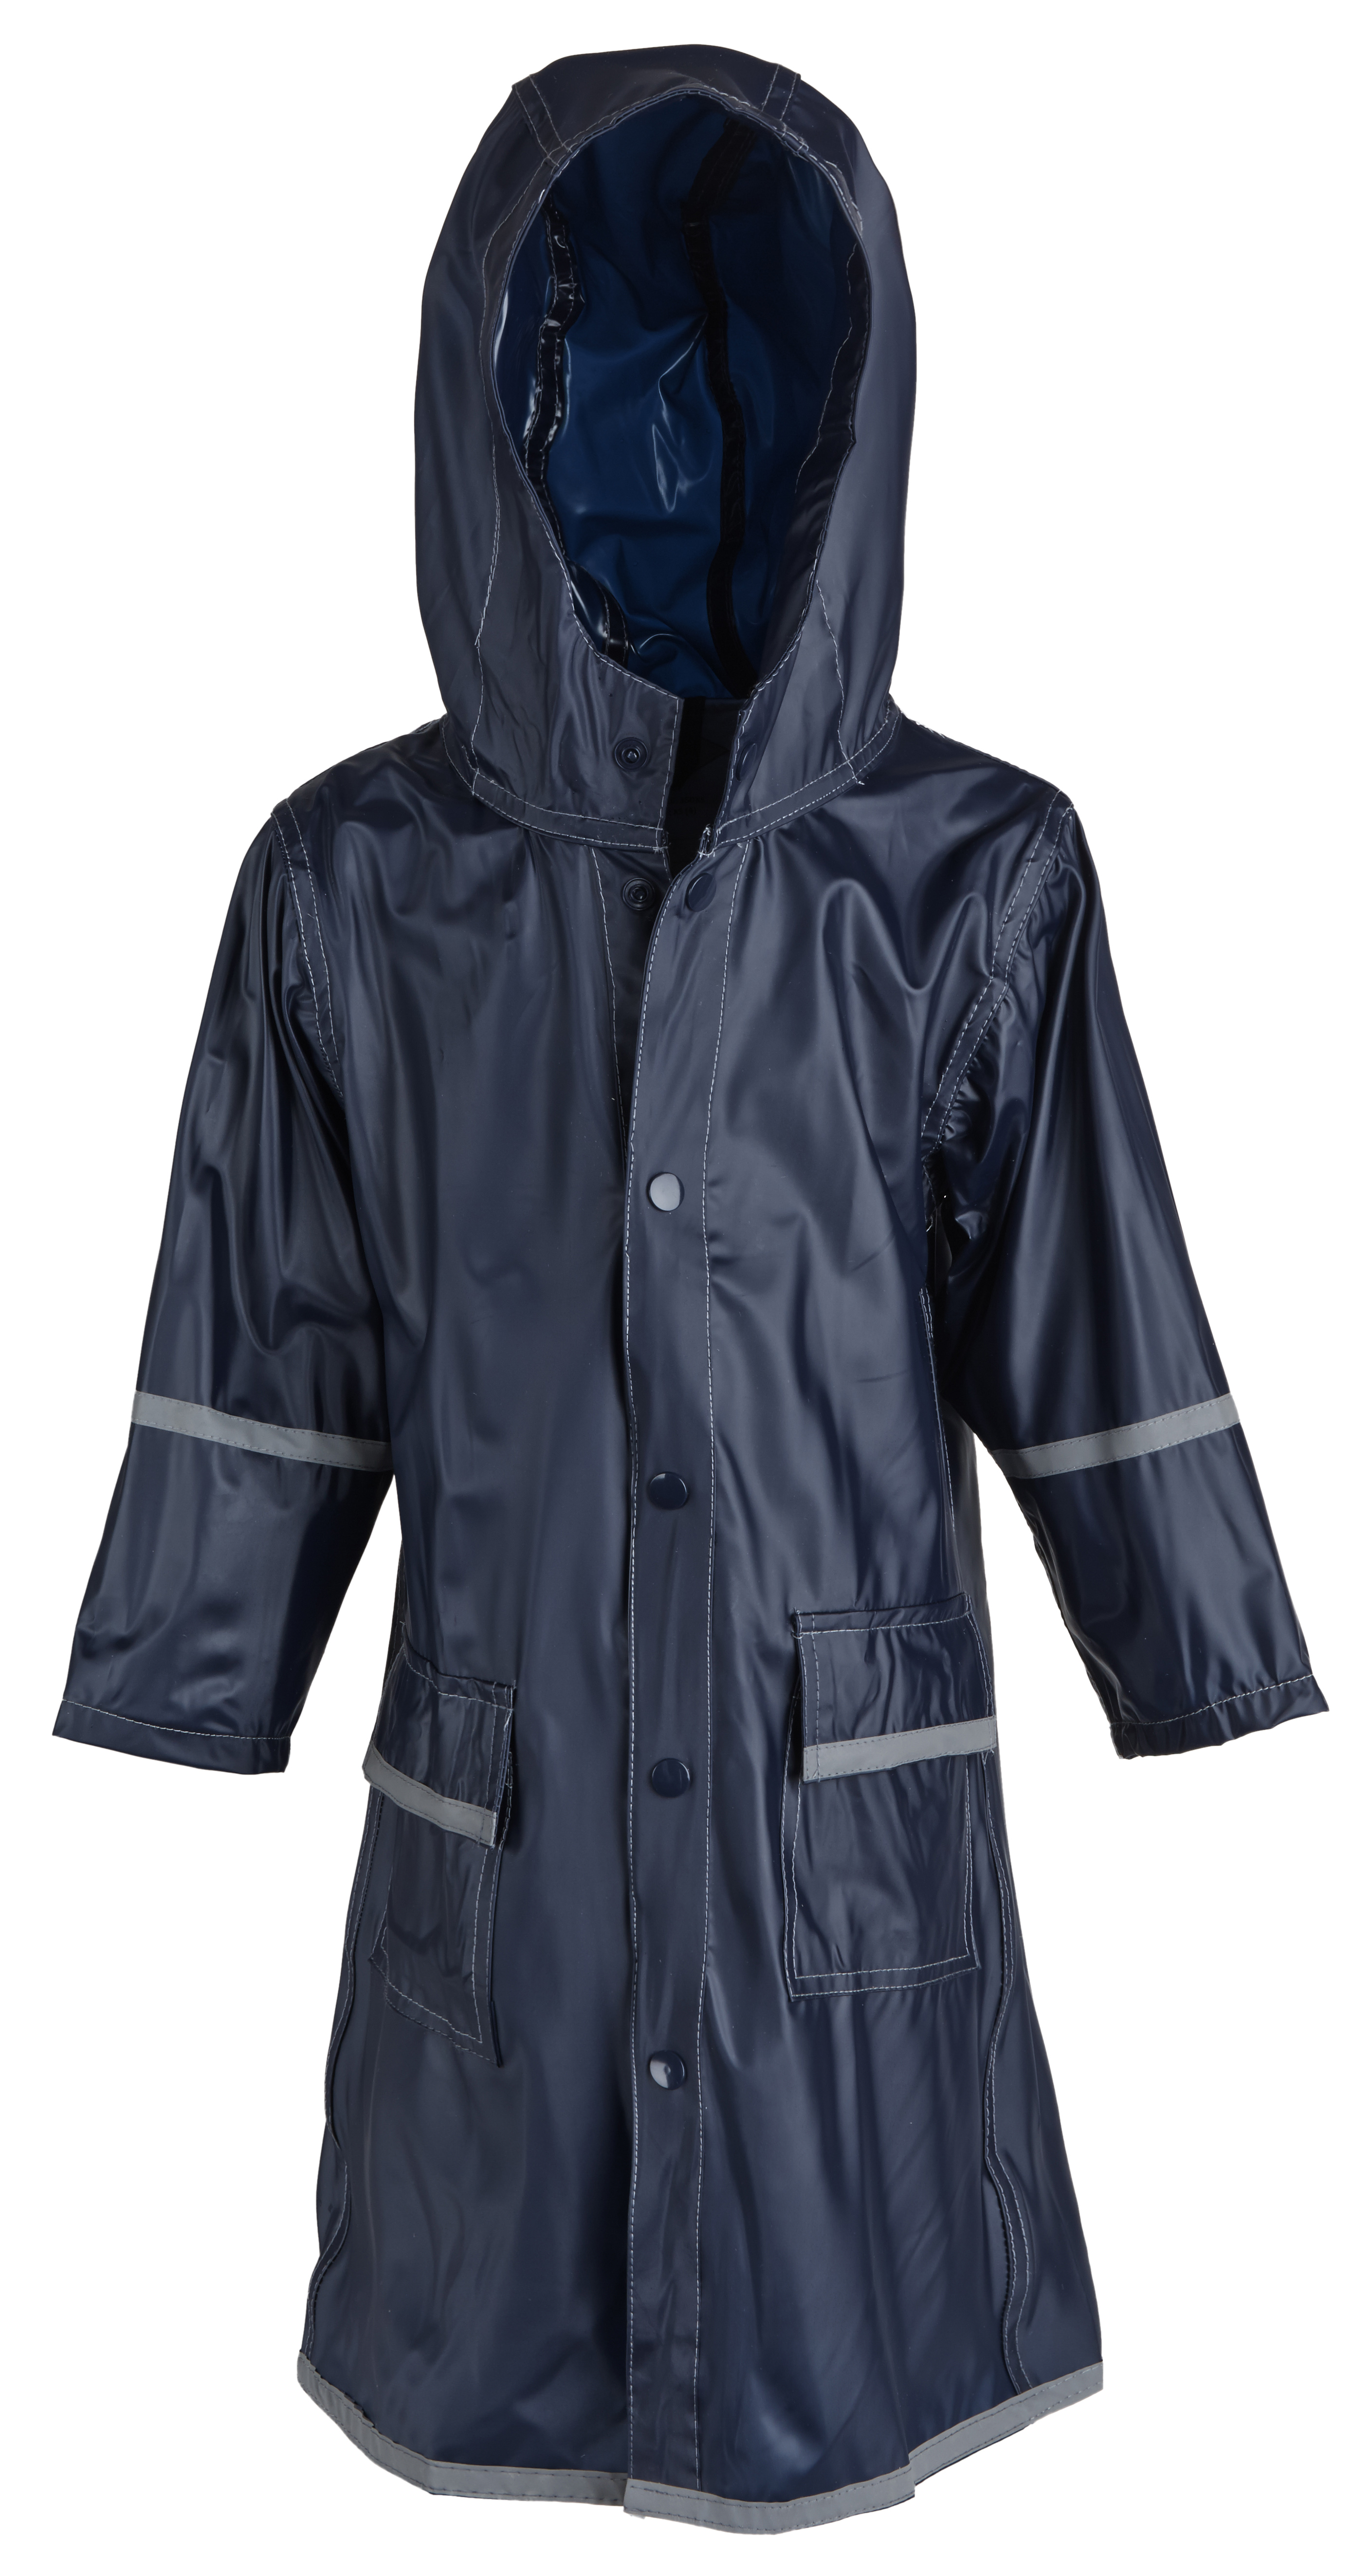 Juniors Premium Rain Jacket Kids Water Proof Rain Coat with Reflector